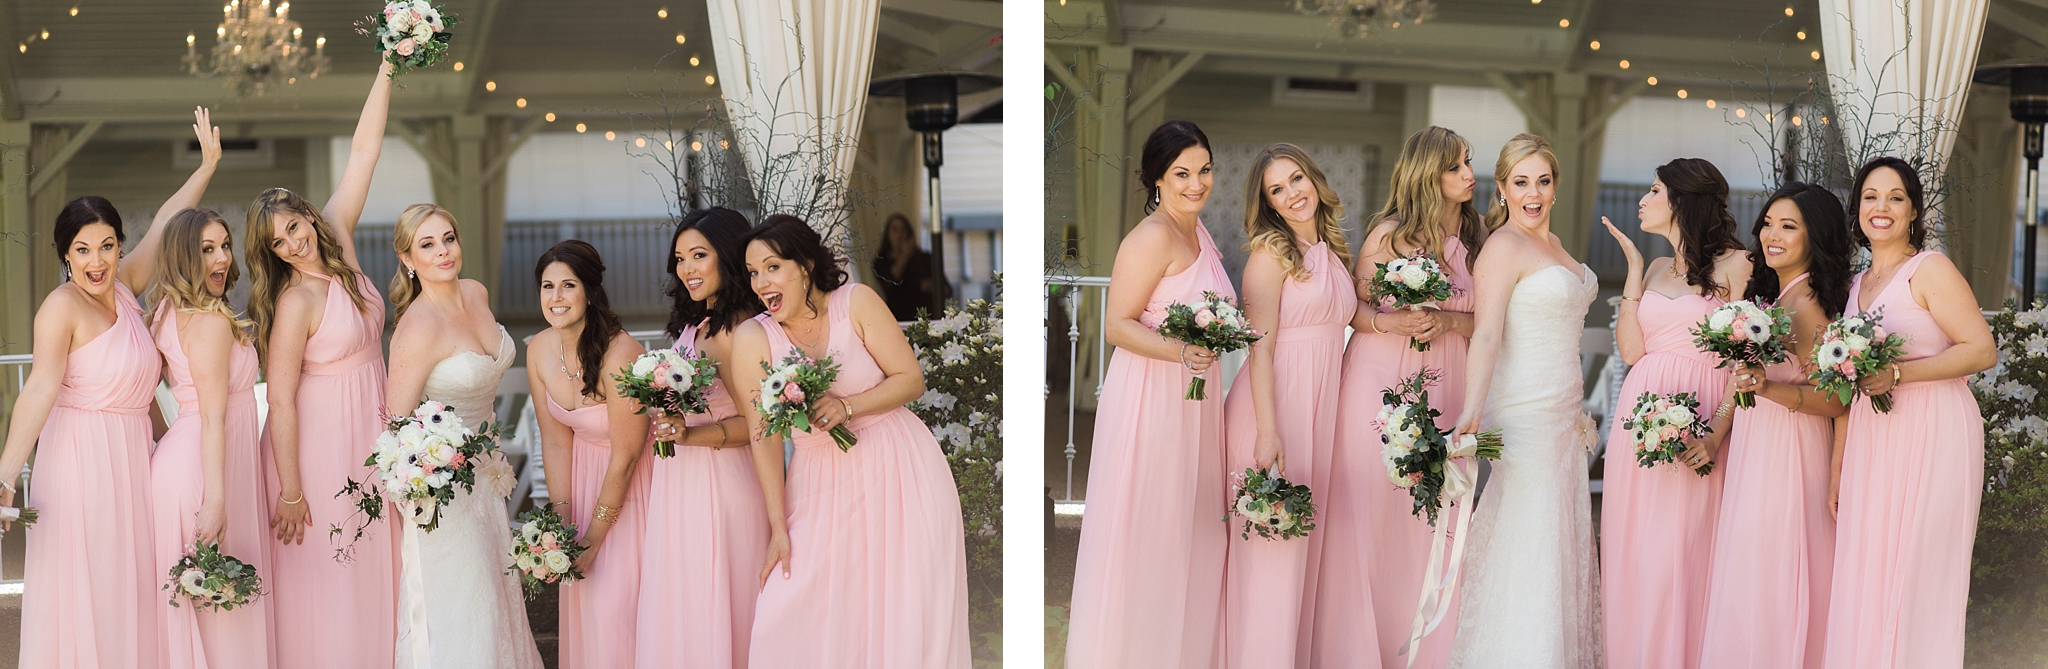 cjs-square-franklin-bridesmaids.jpg